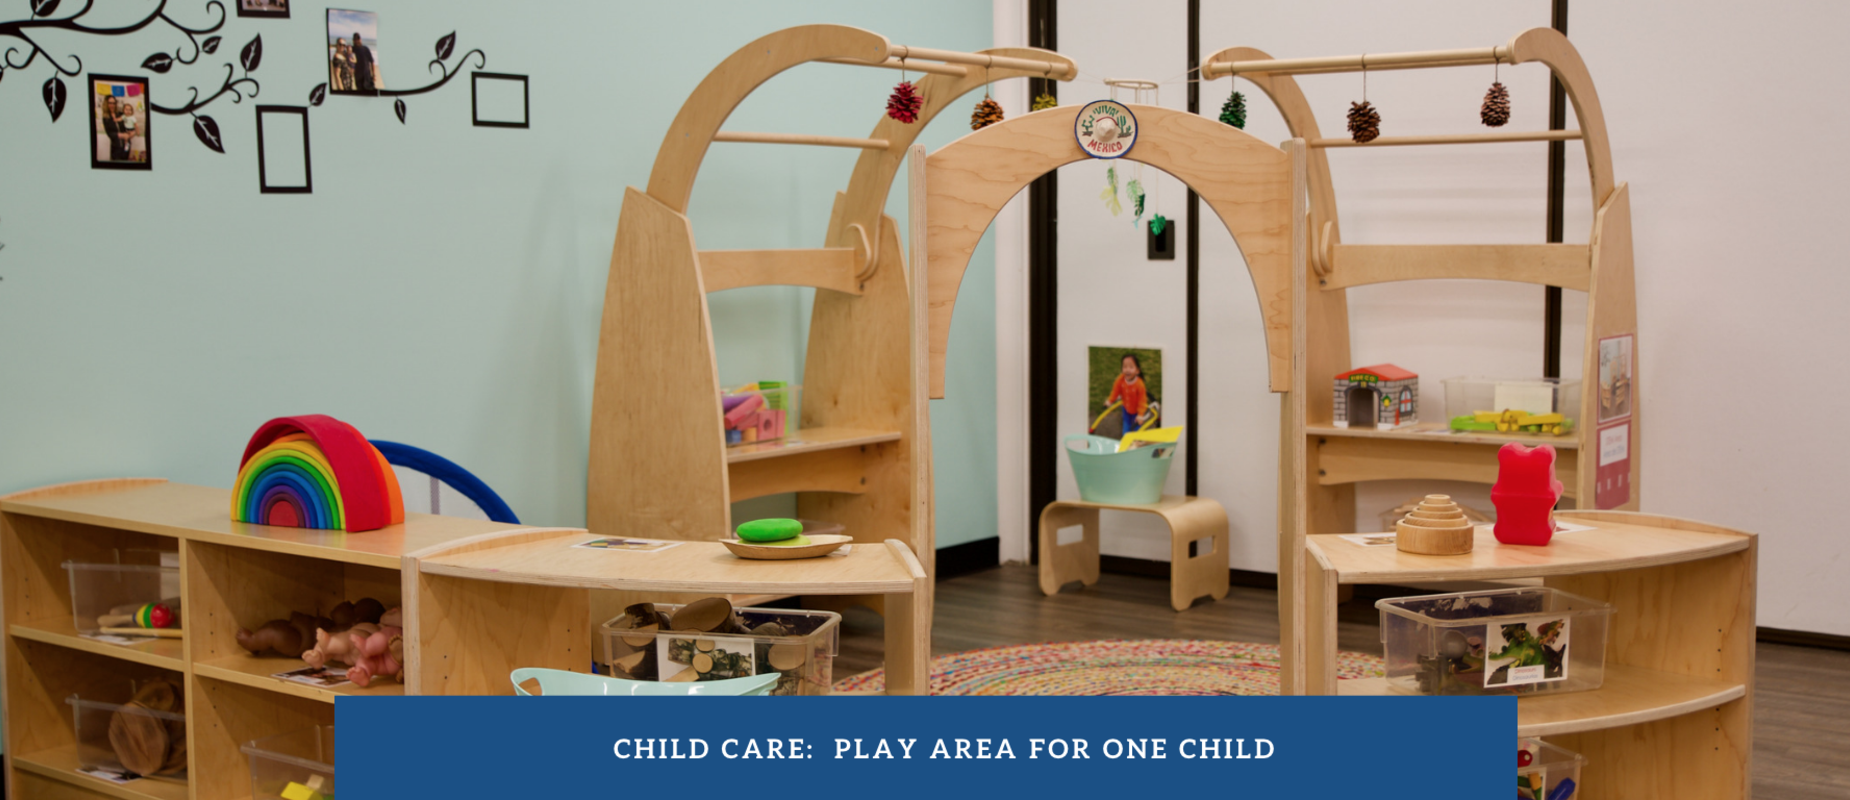 A play area for one child during Child Care at Land School